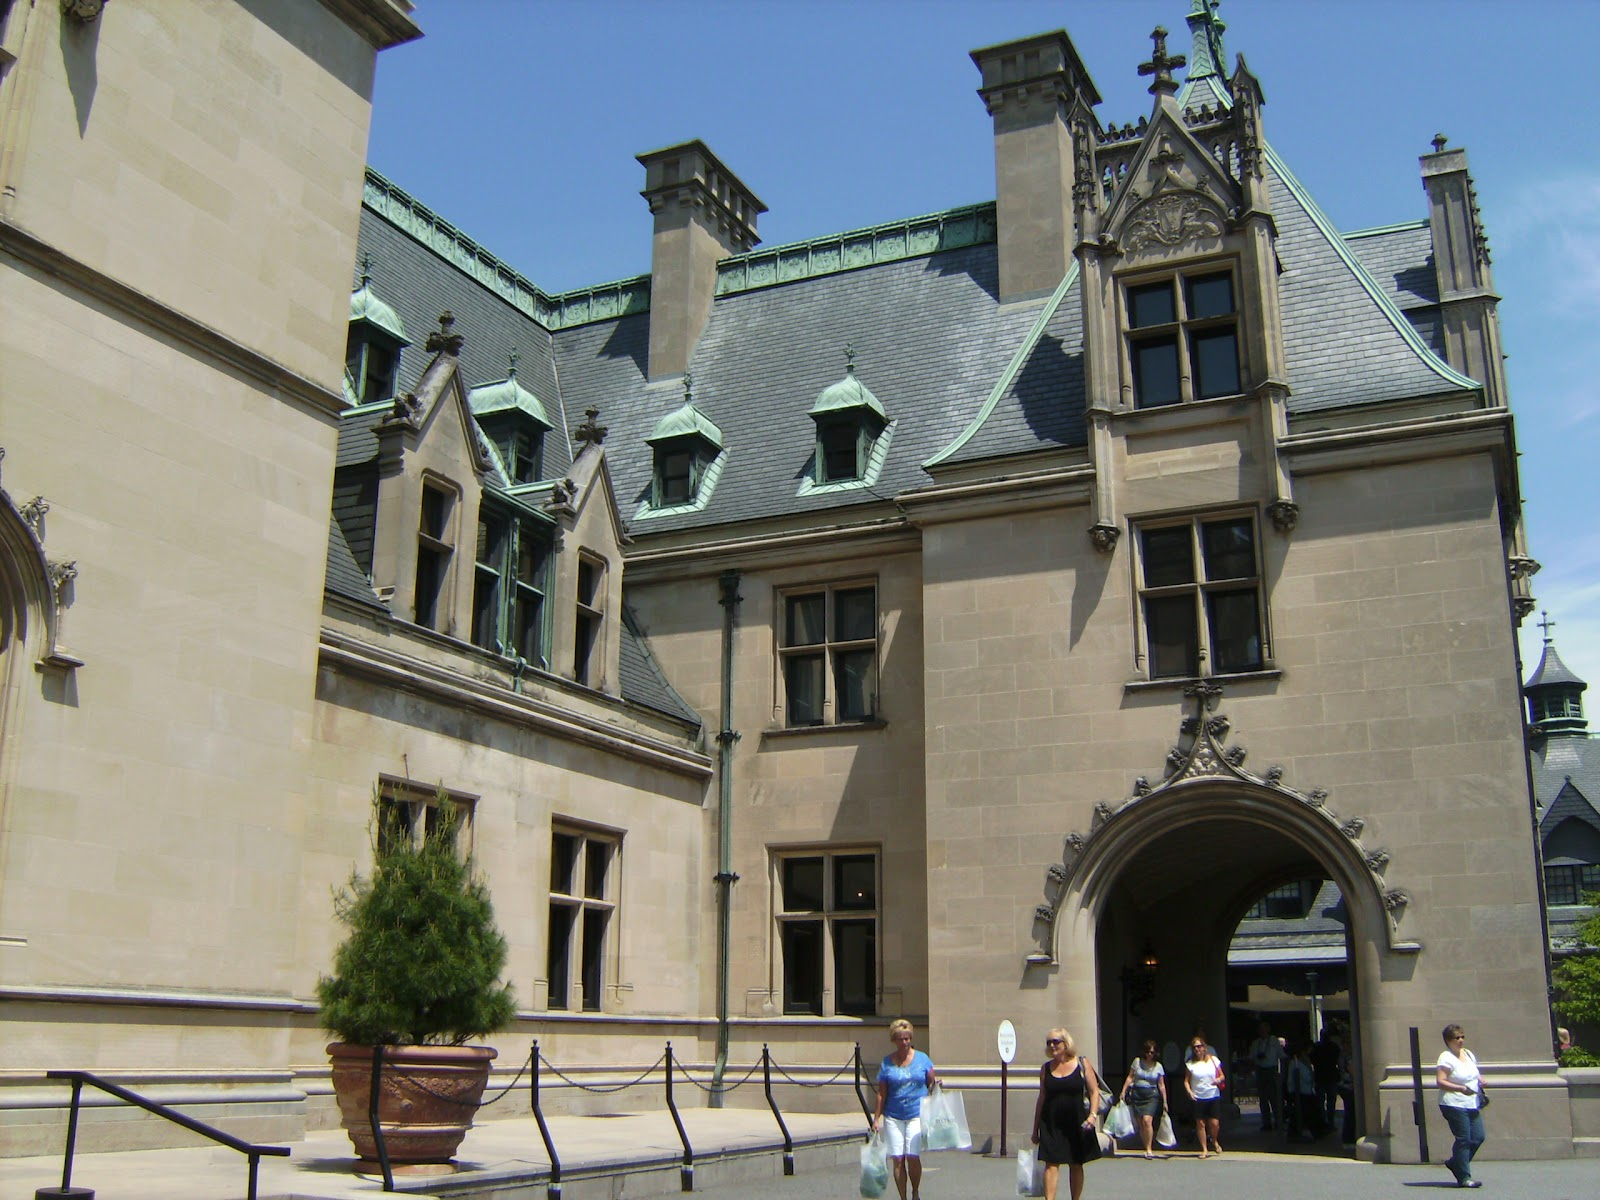 Use Biltmore Estate promo codes to visit George Vanderbilt's historic architectural wonder in the heart of North Carolina. The , acre property features acres of gardens, parkland, and a winery, as well as a regal French-inspired 34 bedroom home.